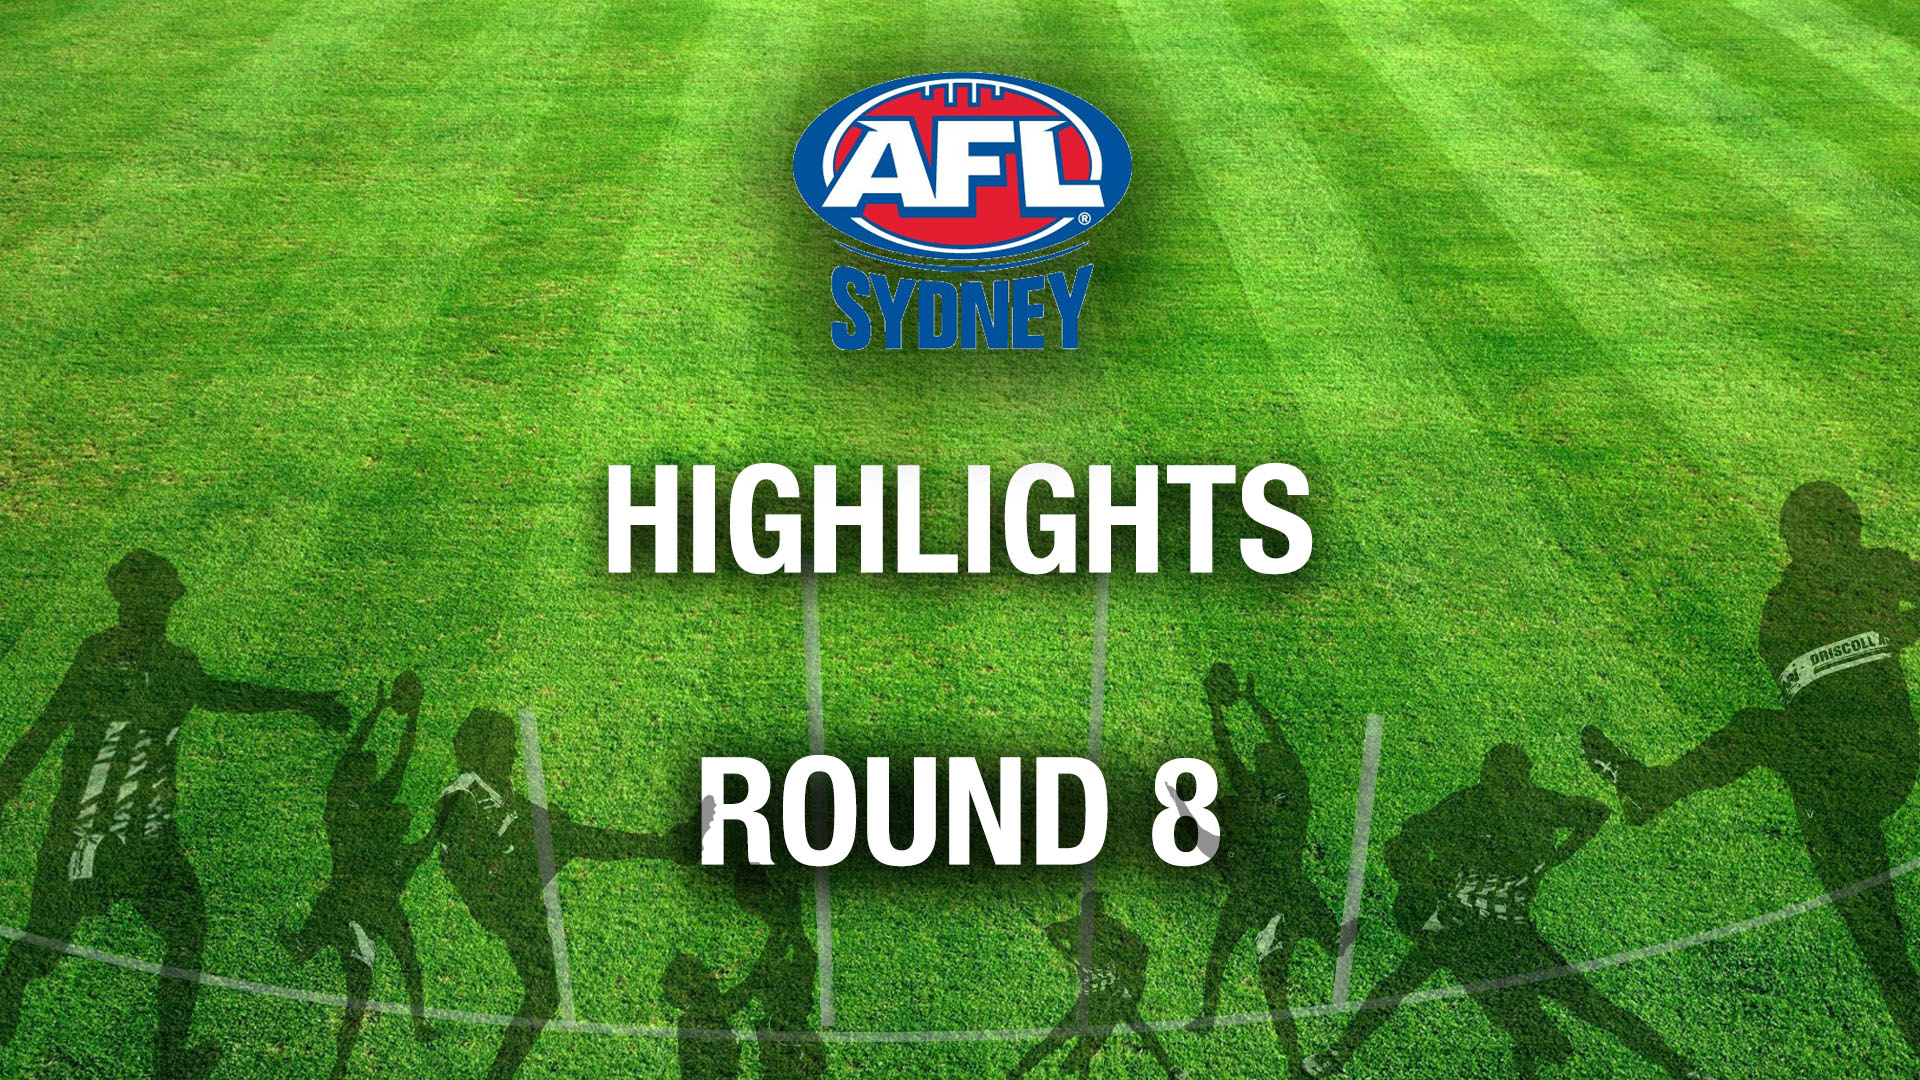 AFL SYDNEY 2018 RD8 HIGHLIGHTS